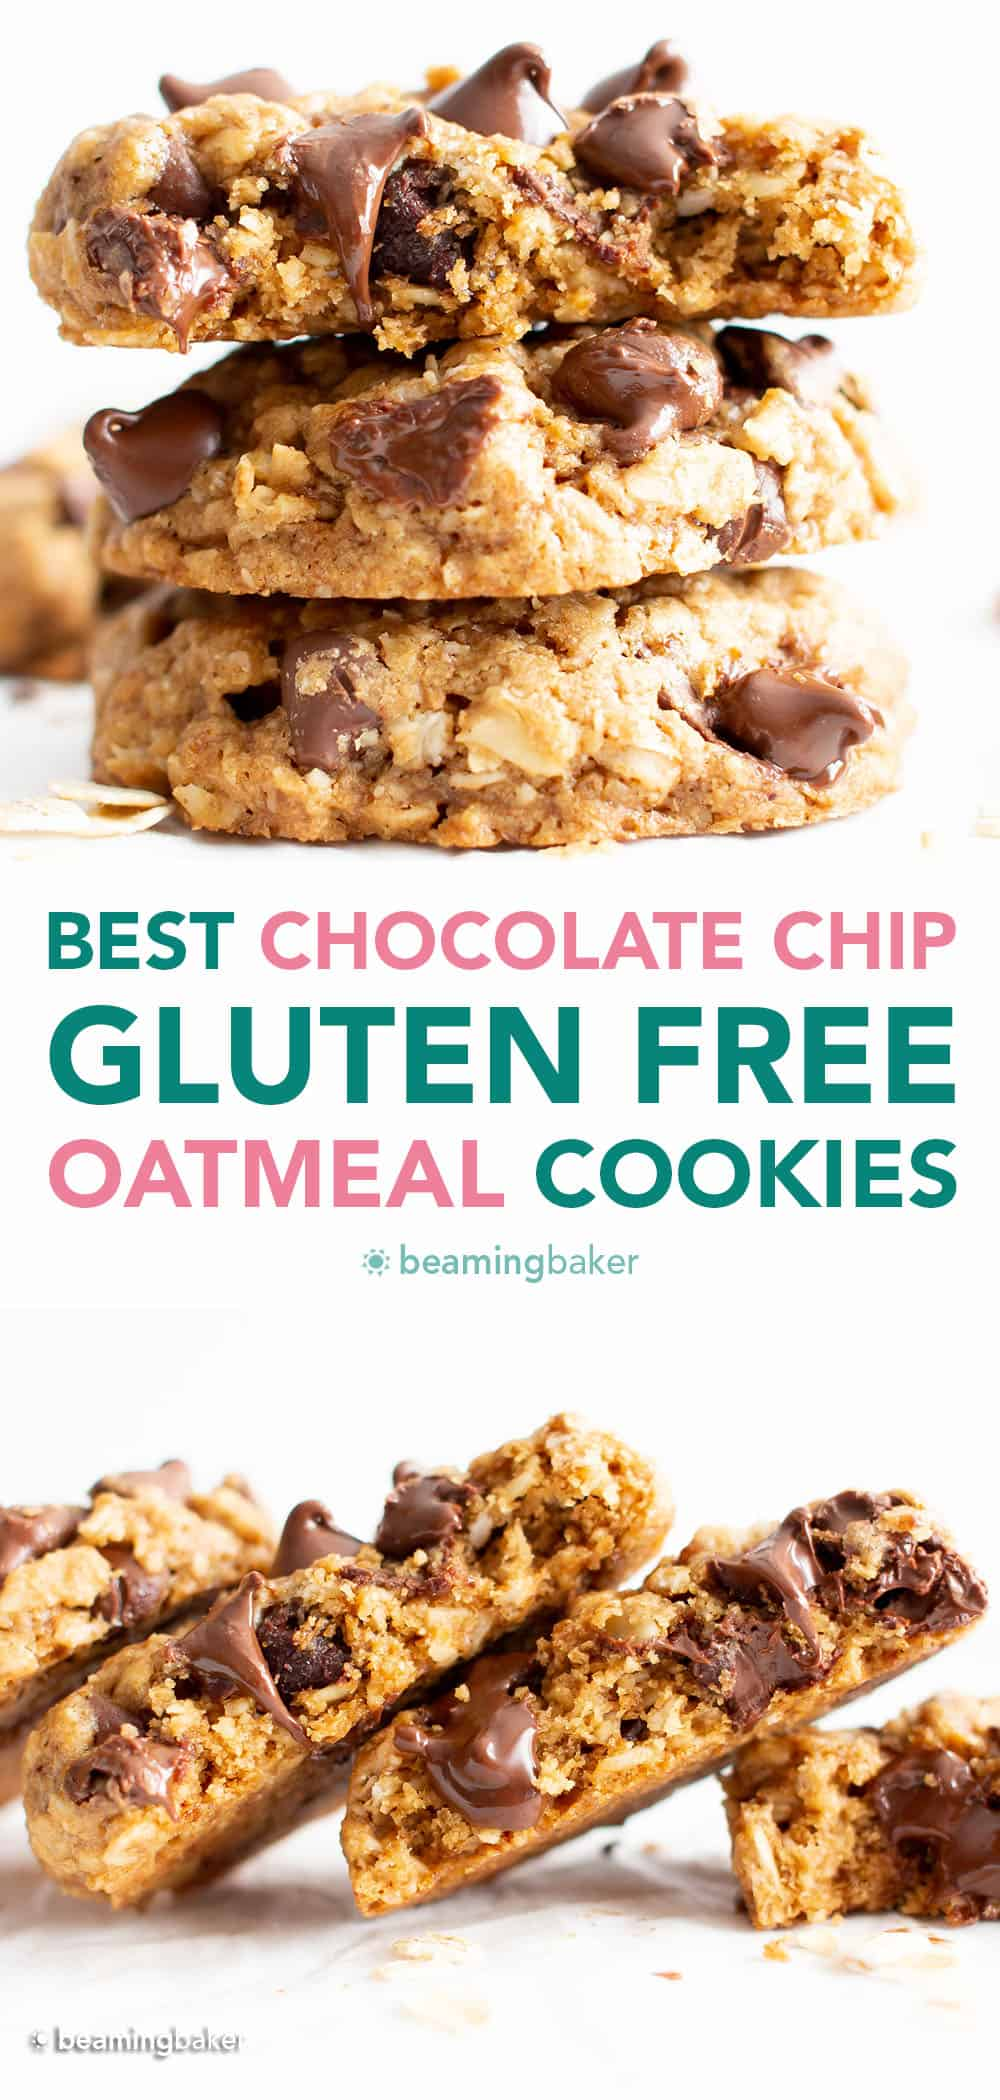 The BEST Gluten Free Oatmeal Chocolate Chip Cookies are crispy on the outside, perfectly chewy 'n soft on the inside, and packed with cozy oatmeal & rich chocolate chip flavor. #GlutenFree #OatmealChocolateChipCookies #OatmealCookies #GFCookies | Recipe at BeamingBaker.com